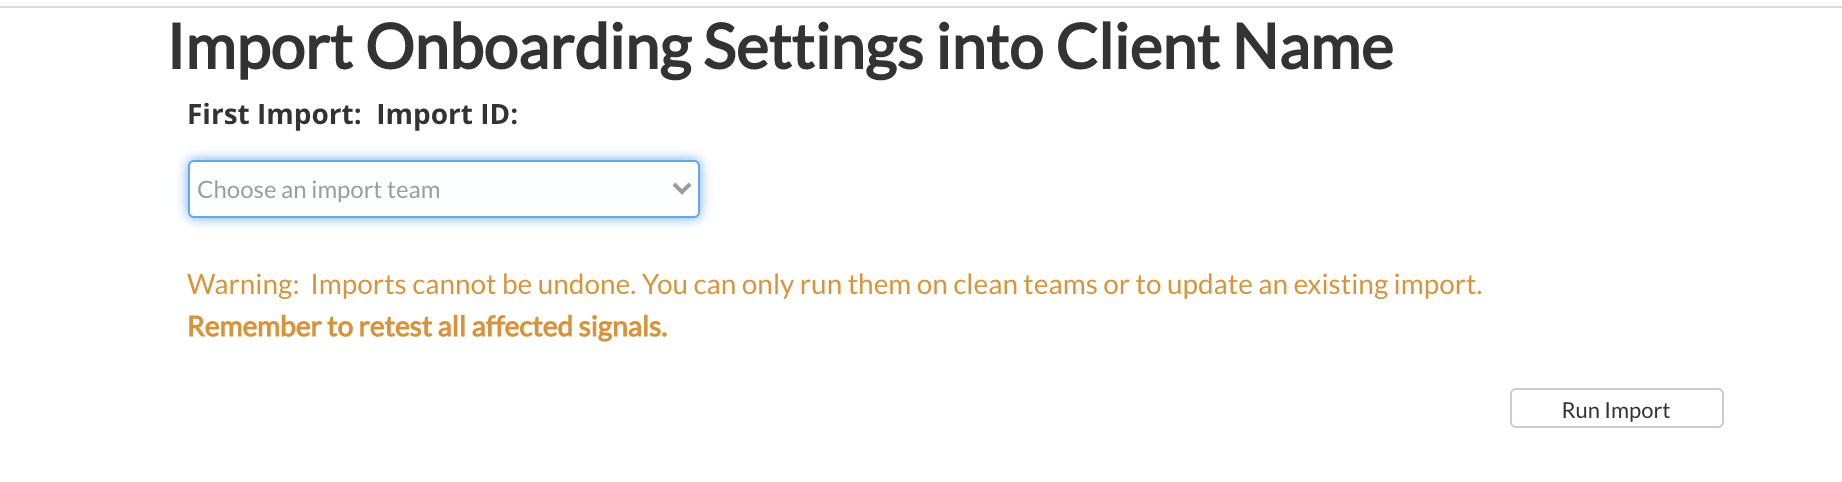 Import Onboarding Settings into Client Name  First Import: Import ID:  Choose an import team  Warning: Imports cannot be undone. You can only run them on clean teams or to update an existing import.  Remember to retest all affected signals.  Run Import